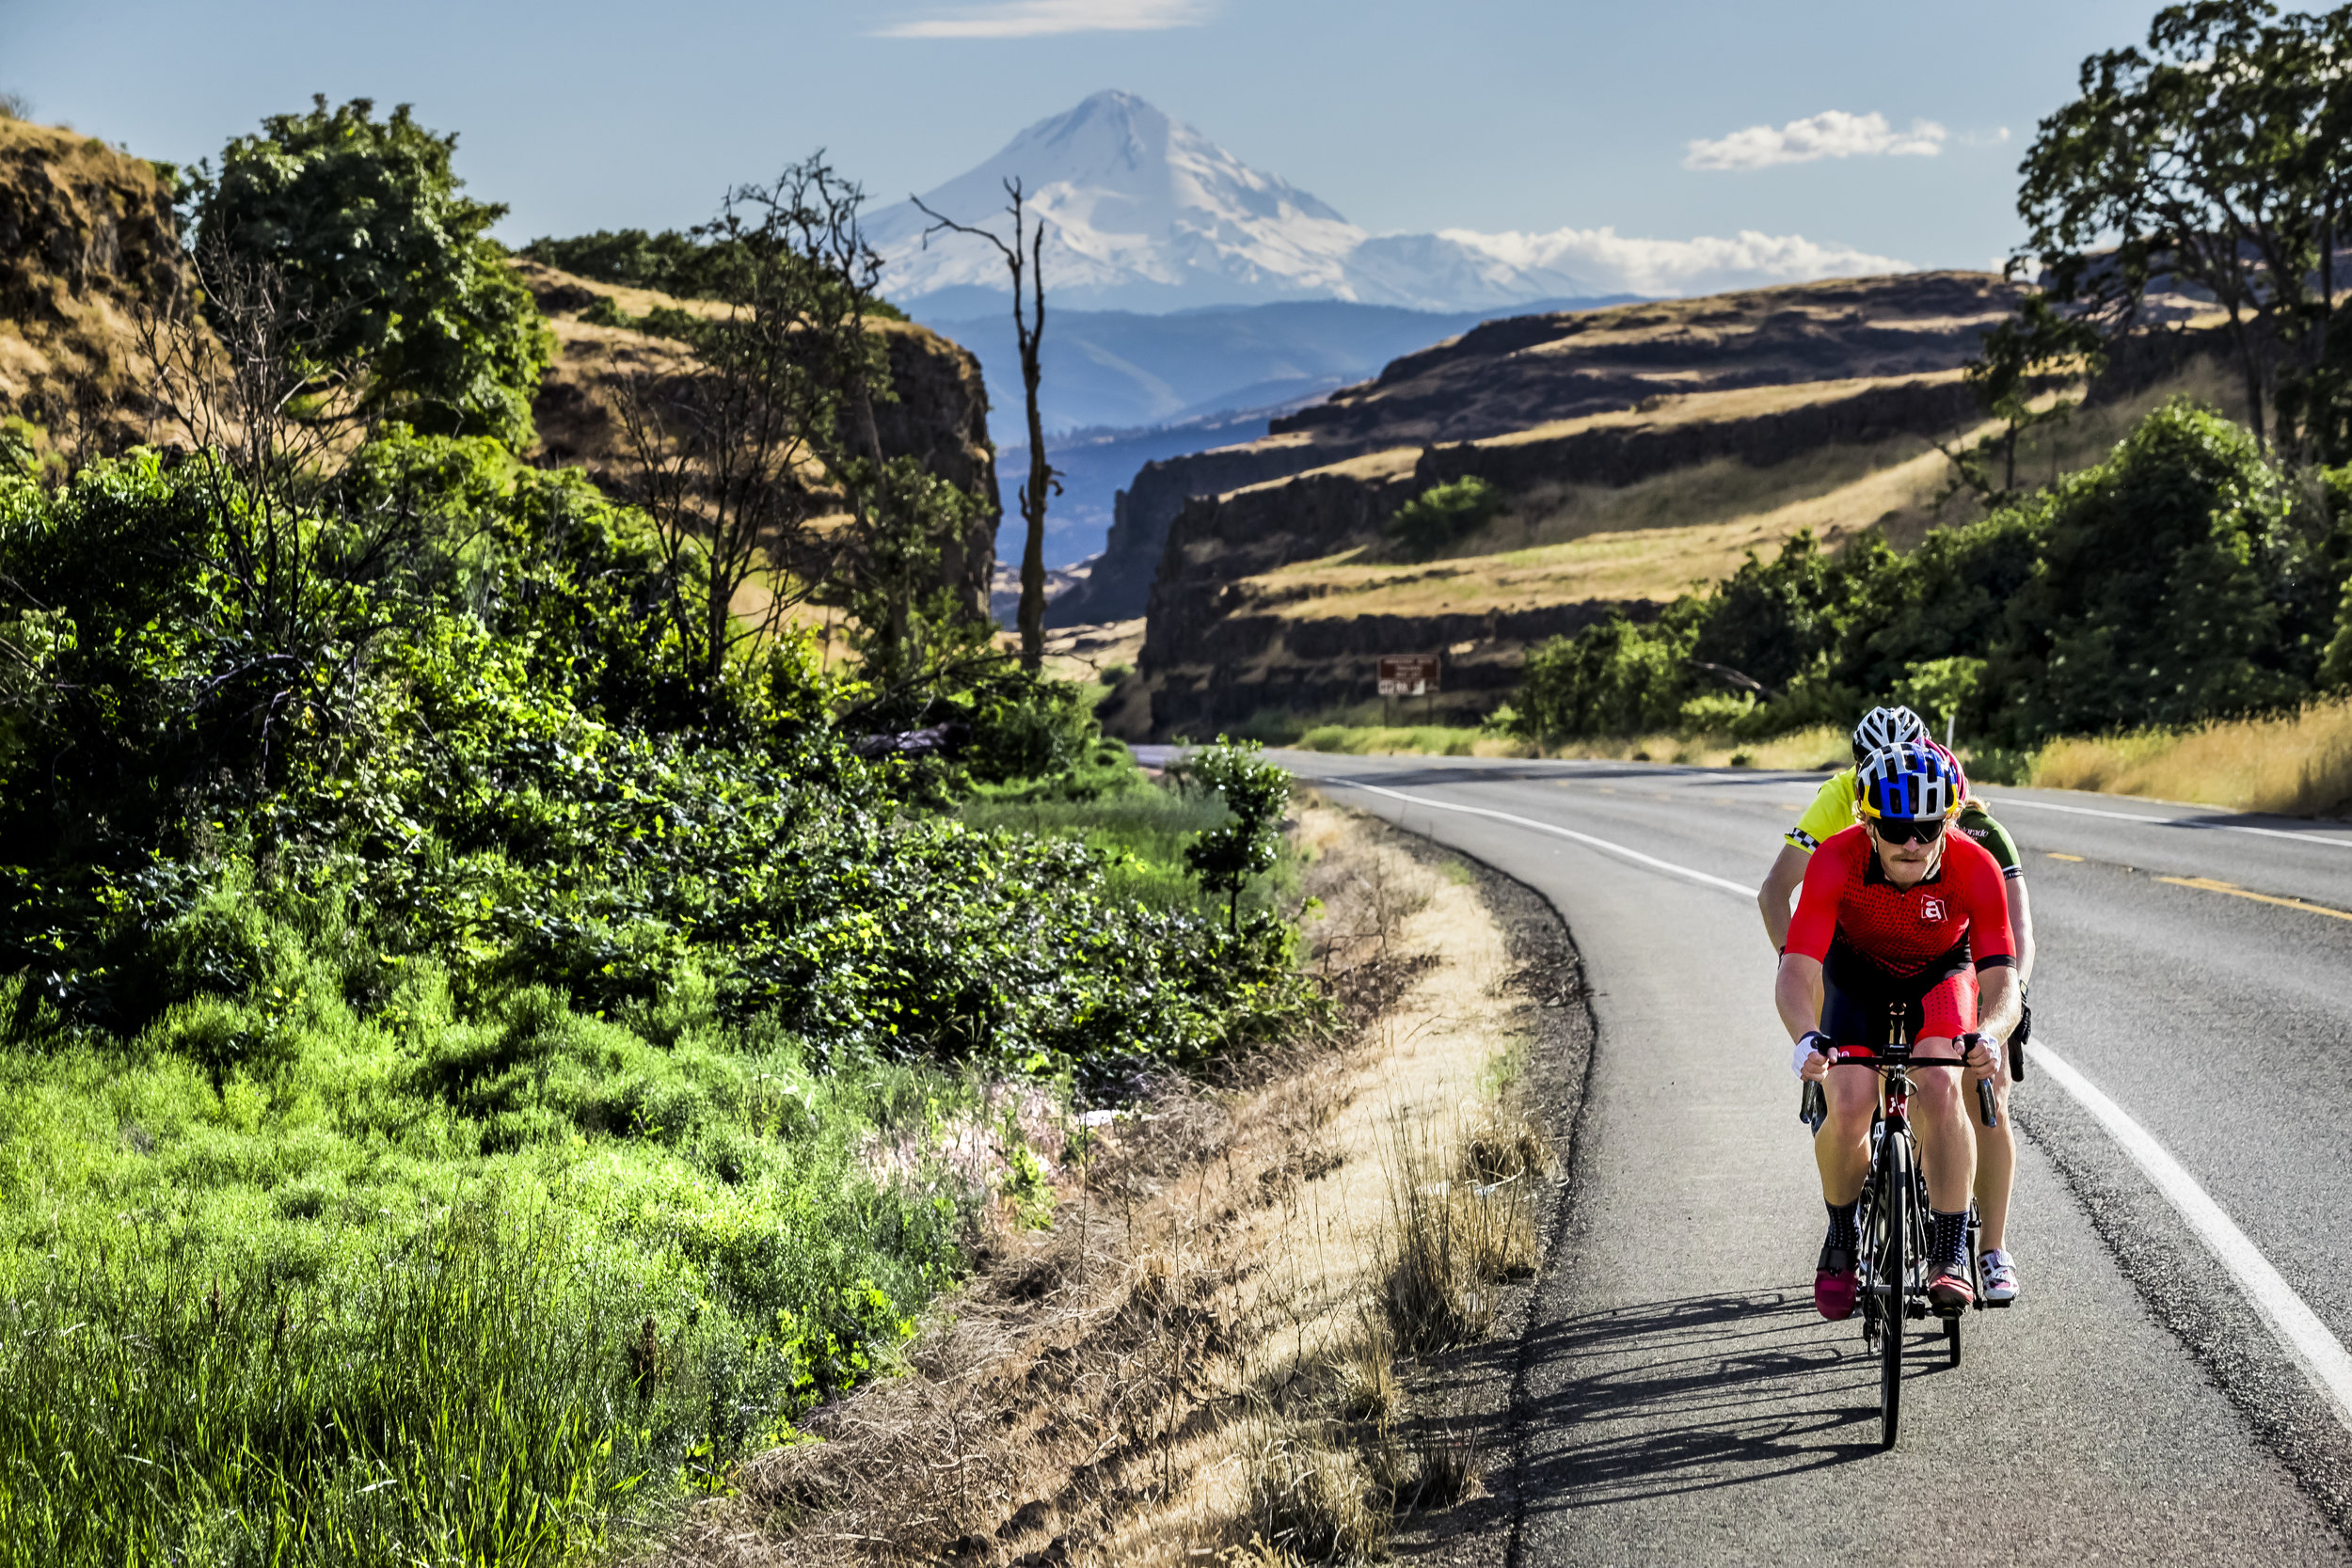 Eric Lagerstrom RedBull Triathlete. Columbia River Gorge, OR